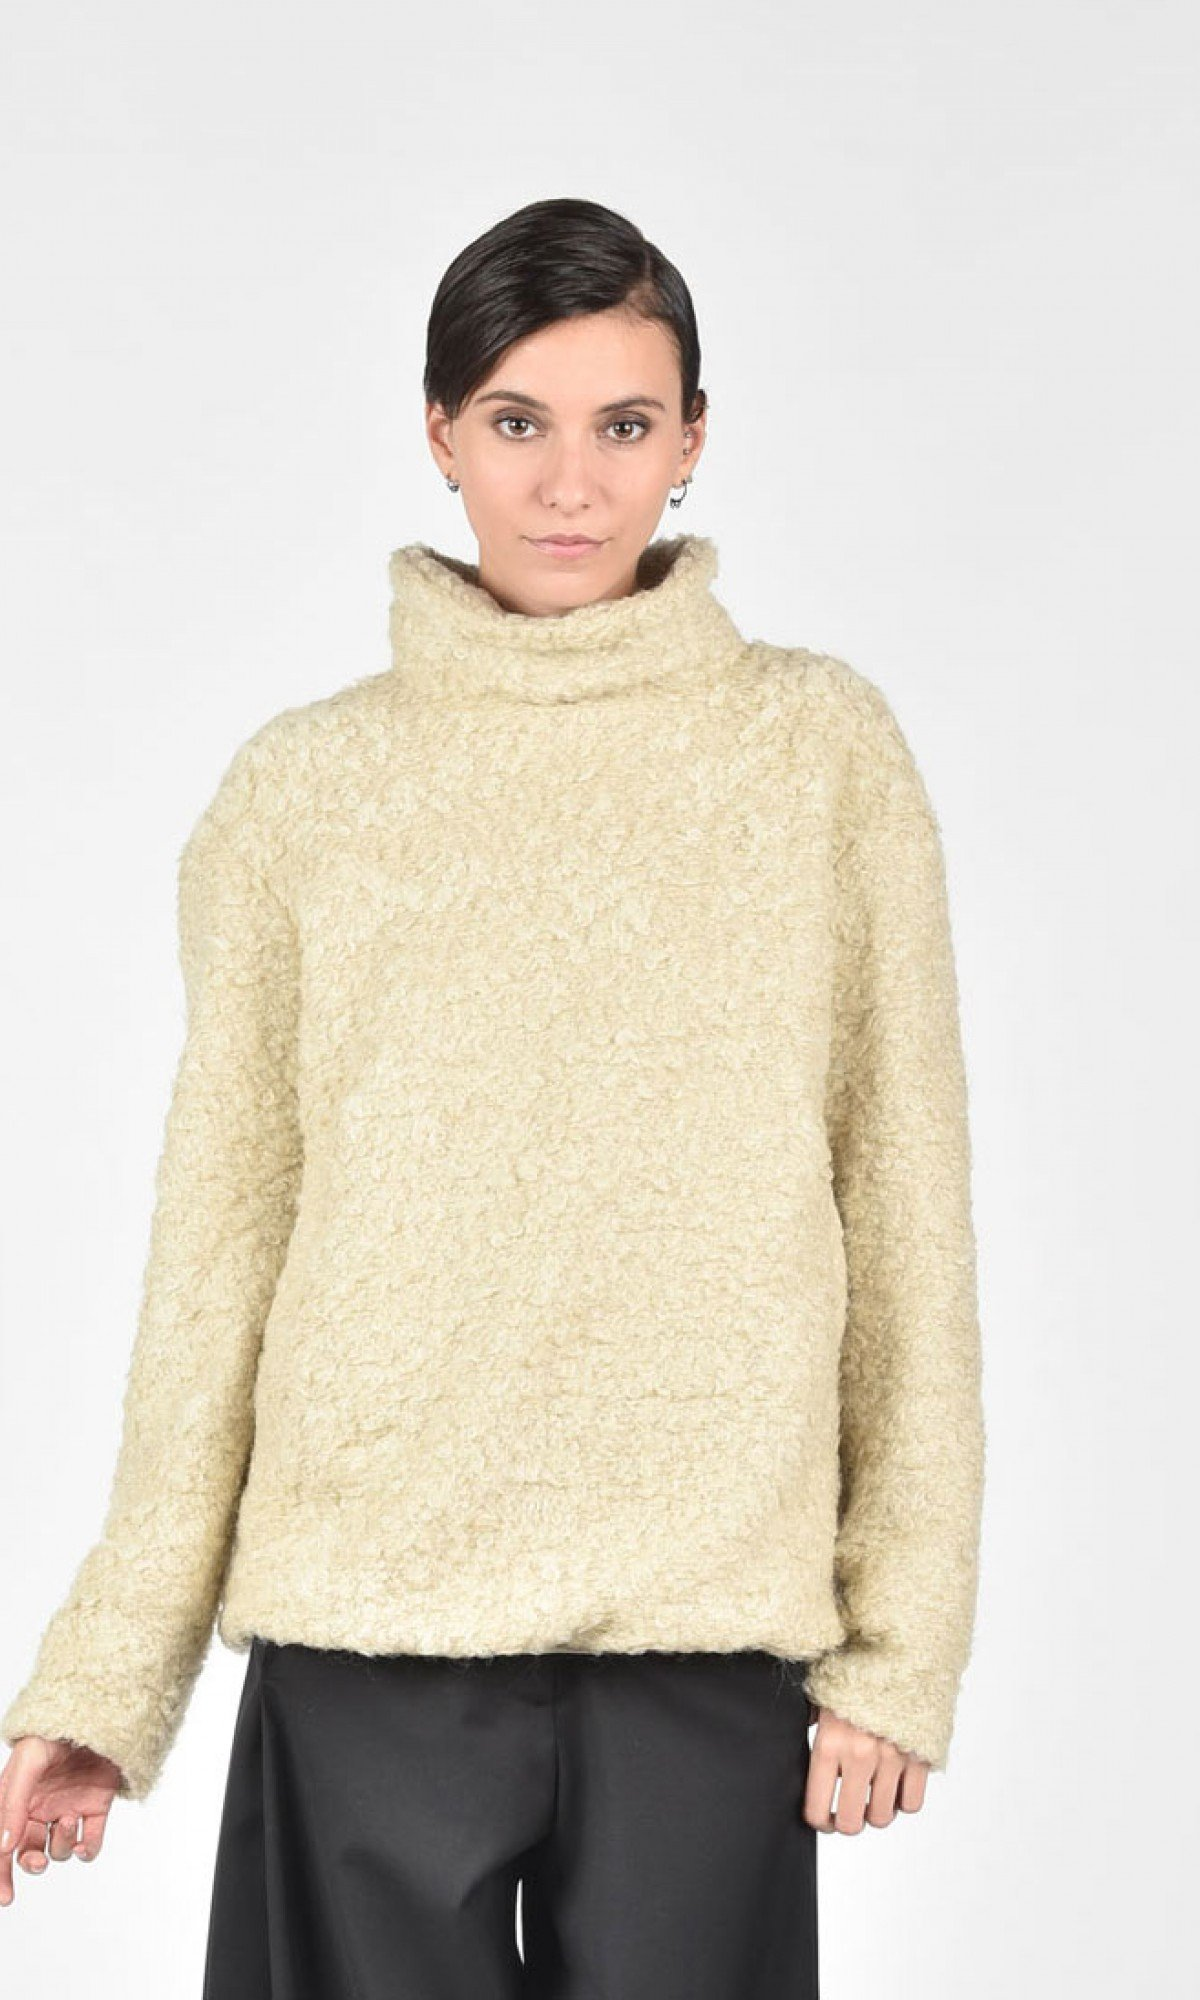 Teddy Sweater With High Collar